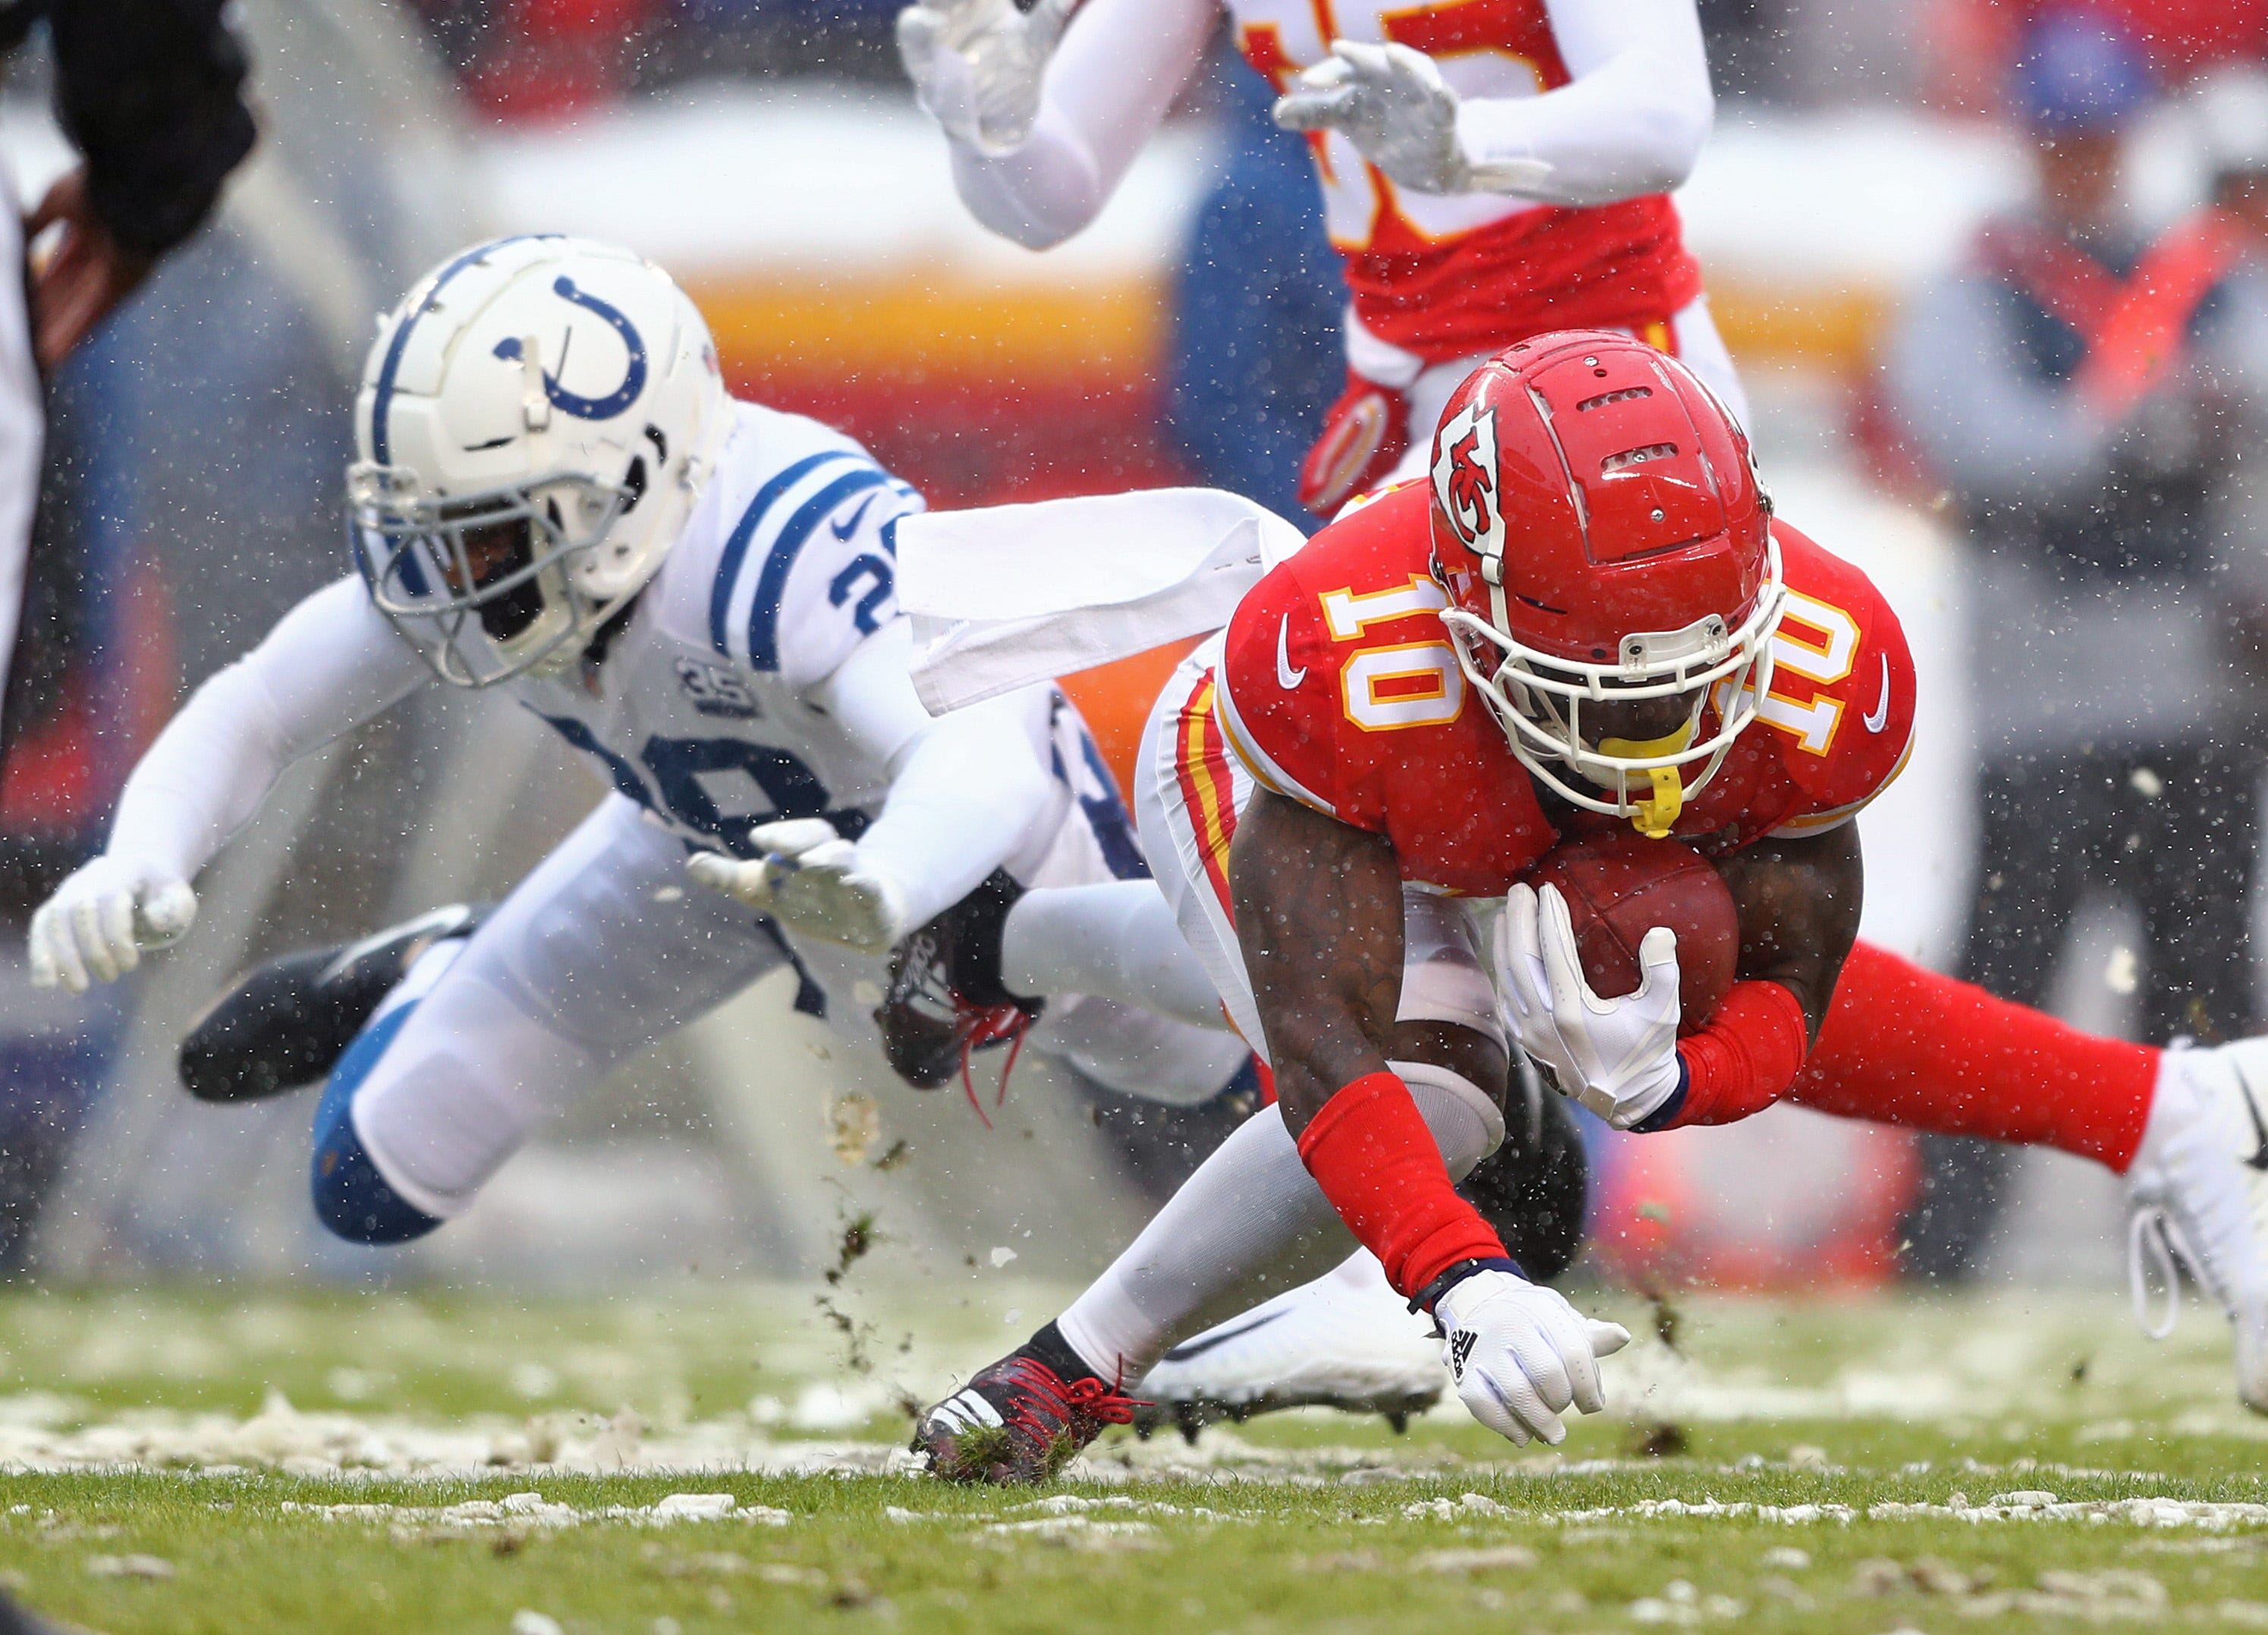 Jan. 12, 2019: Kansas City Chiefs wide receiver Tyreek Hill dives for more yardage during an AFC divisional playoff game against the Indianapolis Colts at Arrowhead Stadium. The Chiefs won the game, 31-13, for the team's first home playoff win in 25 years.